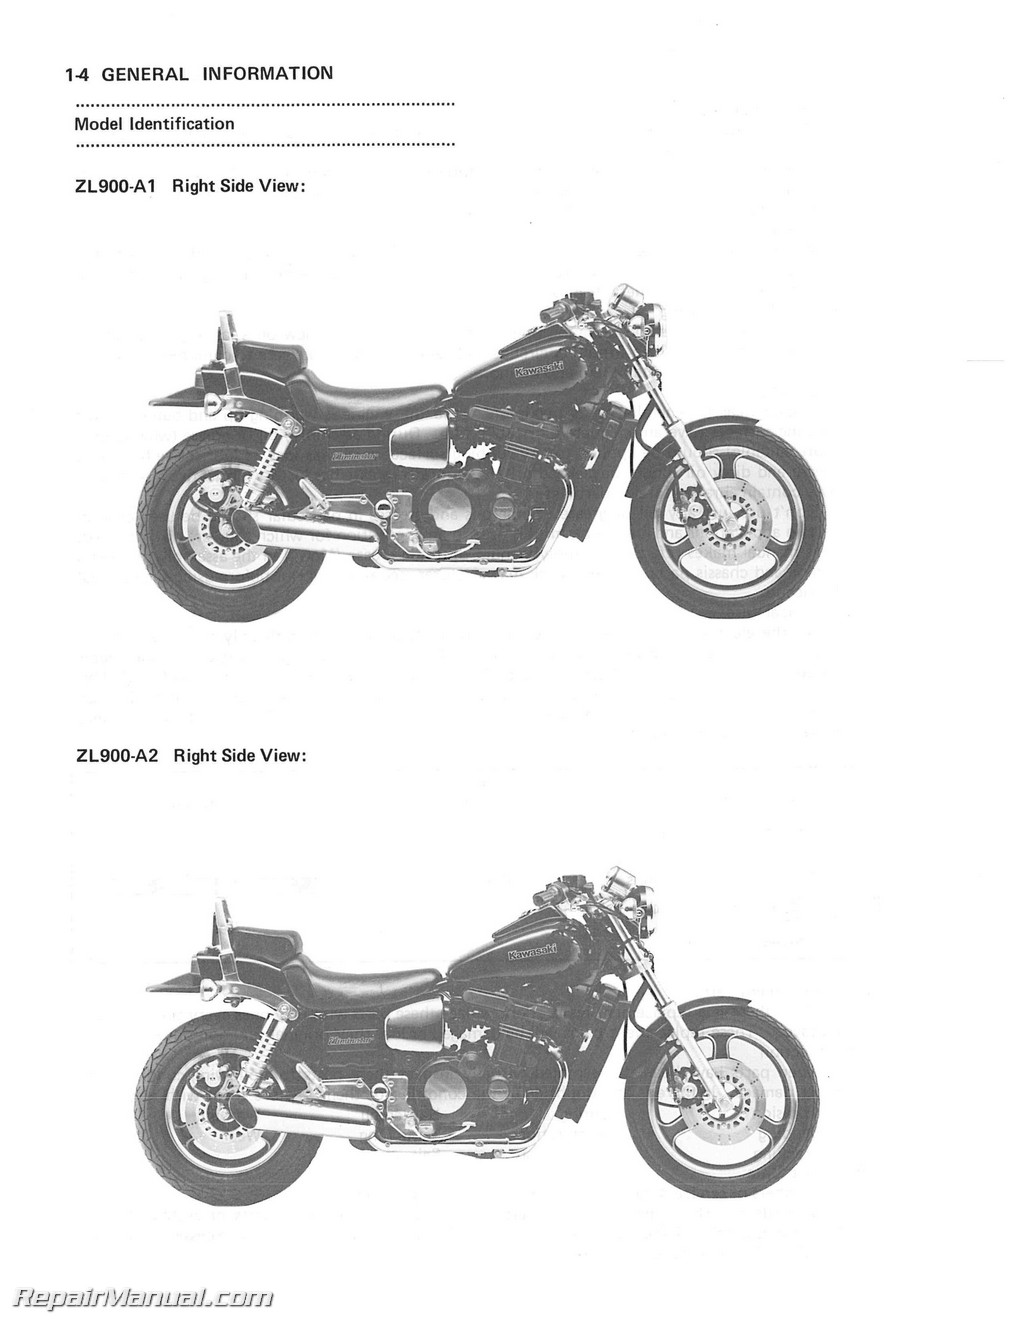 1985-1988 Kawasaki ZL900 ZL1000 Eliminator Motorcycle Service Manual  Supplement